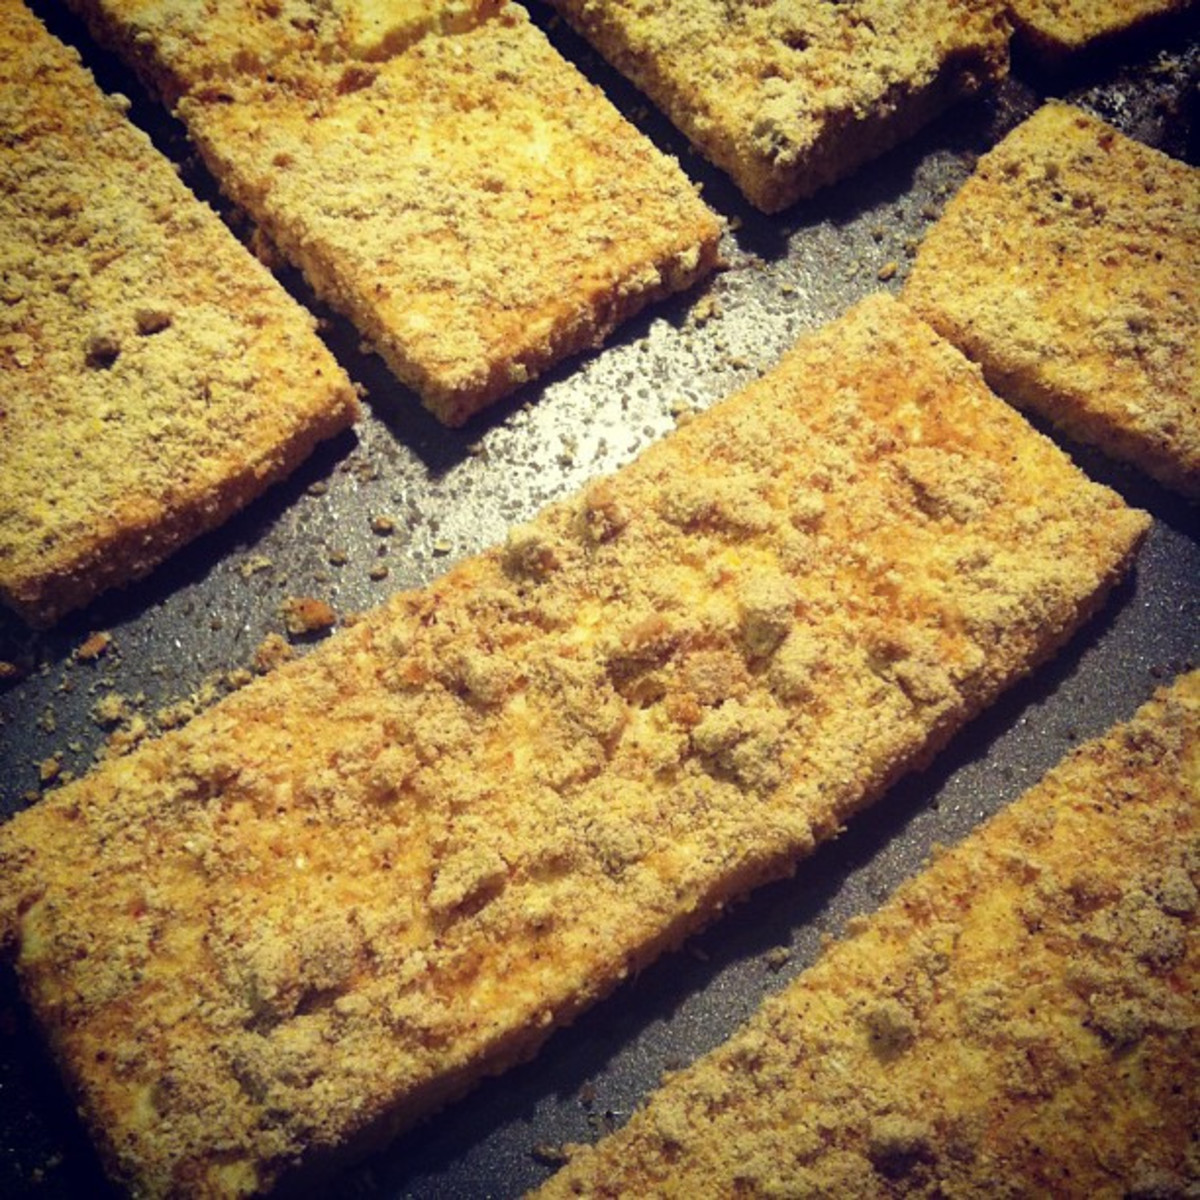 Baked tofu is a great dish to make.